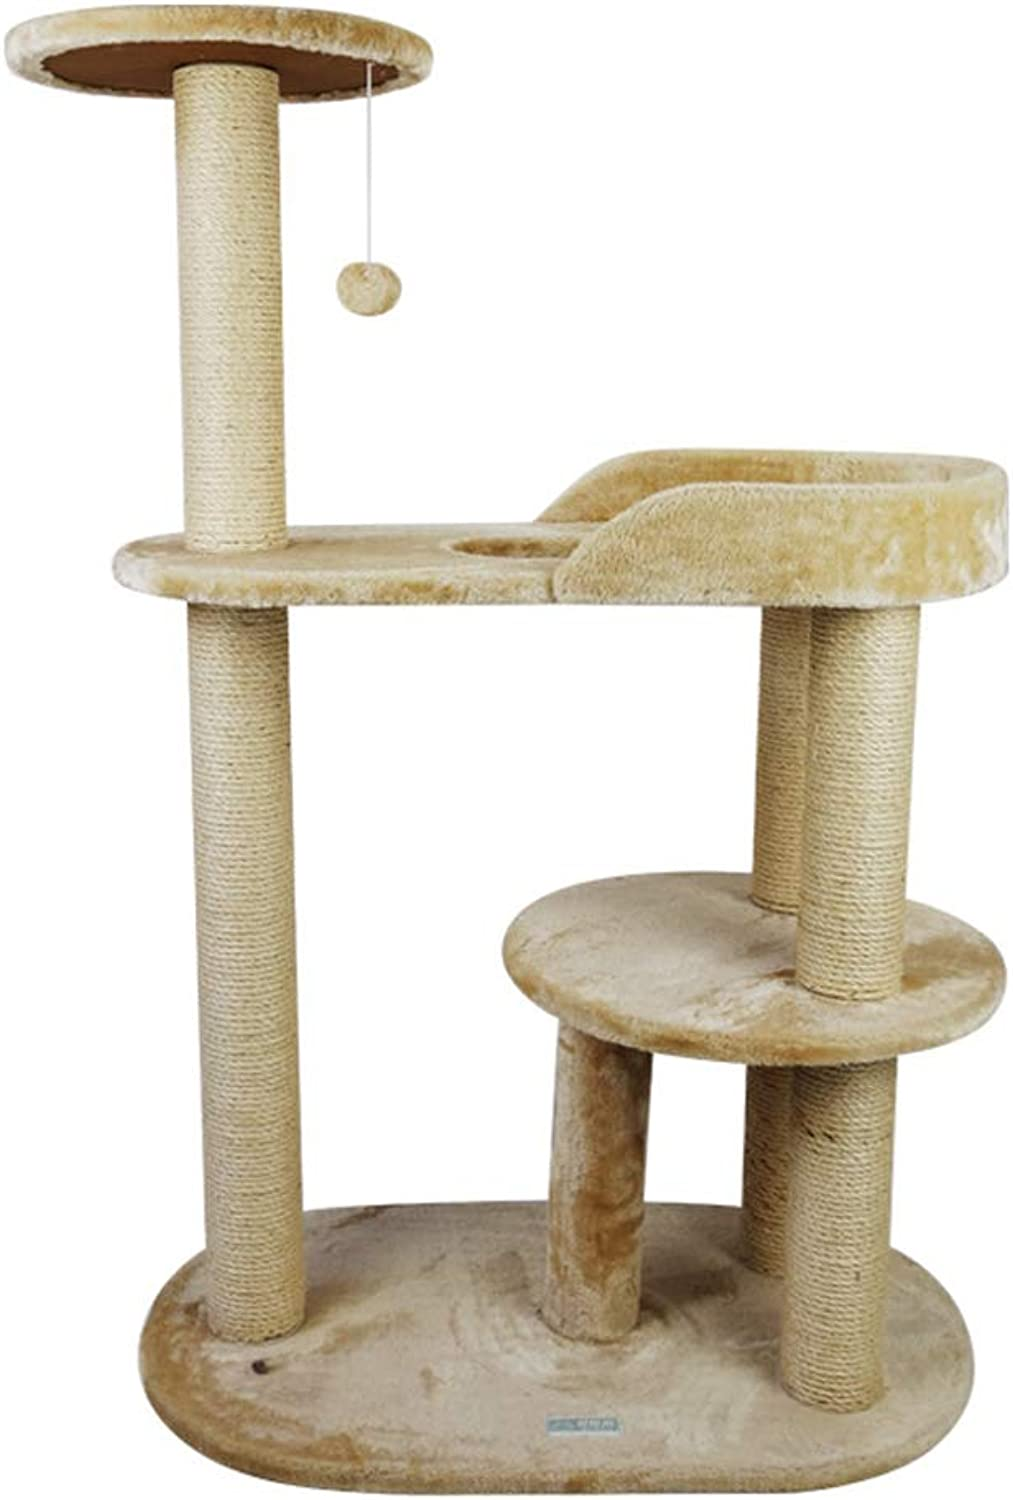 GCHOME Cat tree tower Cat Climbing Frame, Short Plush Fabric Sisal Cat Tree Tower Wear and Scratch Resistant (Beige) A2